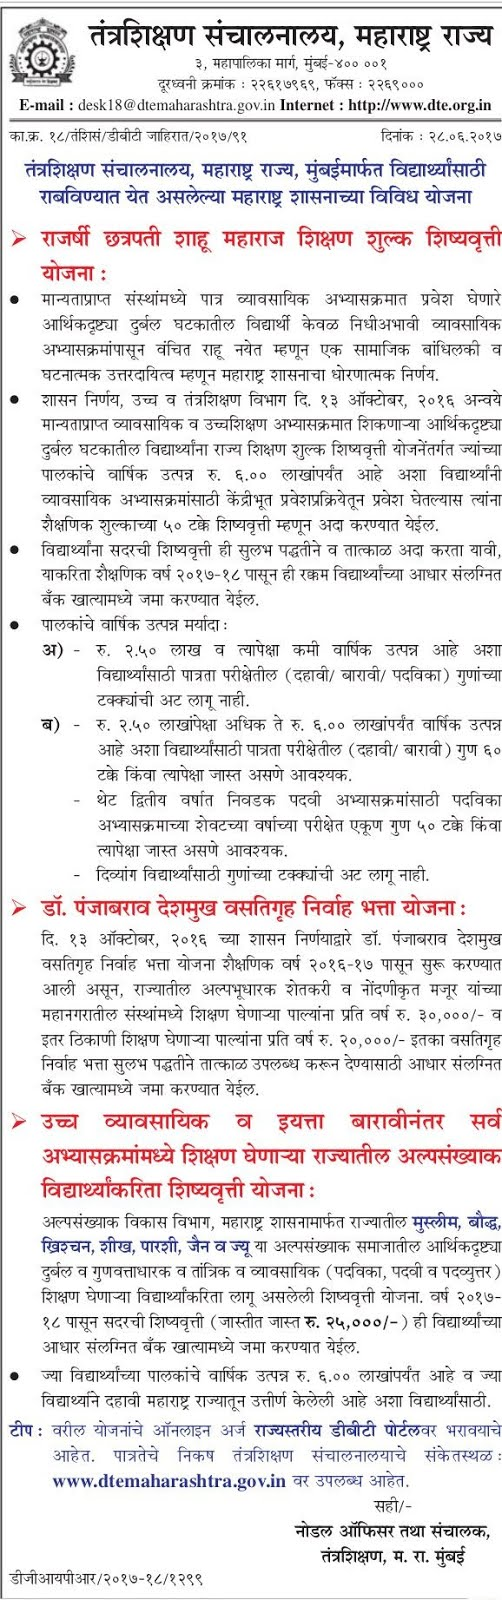 Scholarship updates for india scholarships schemes implemented by medical technical and higher education department of maharashtra state altavistaventures Images